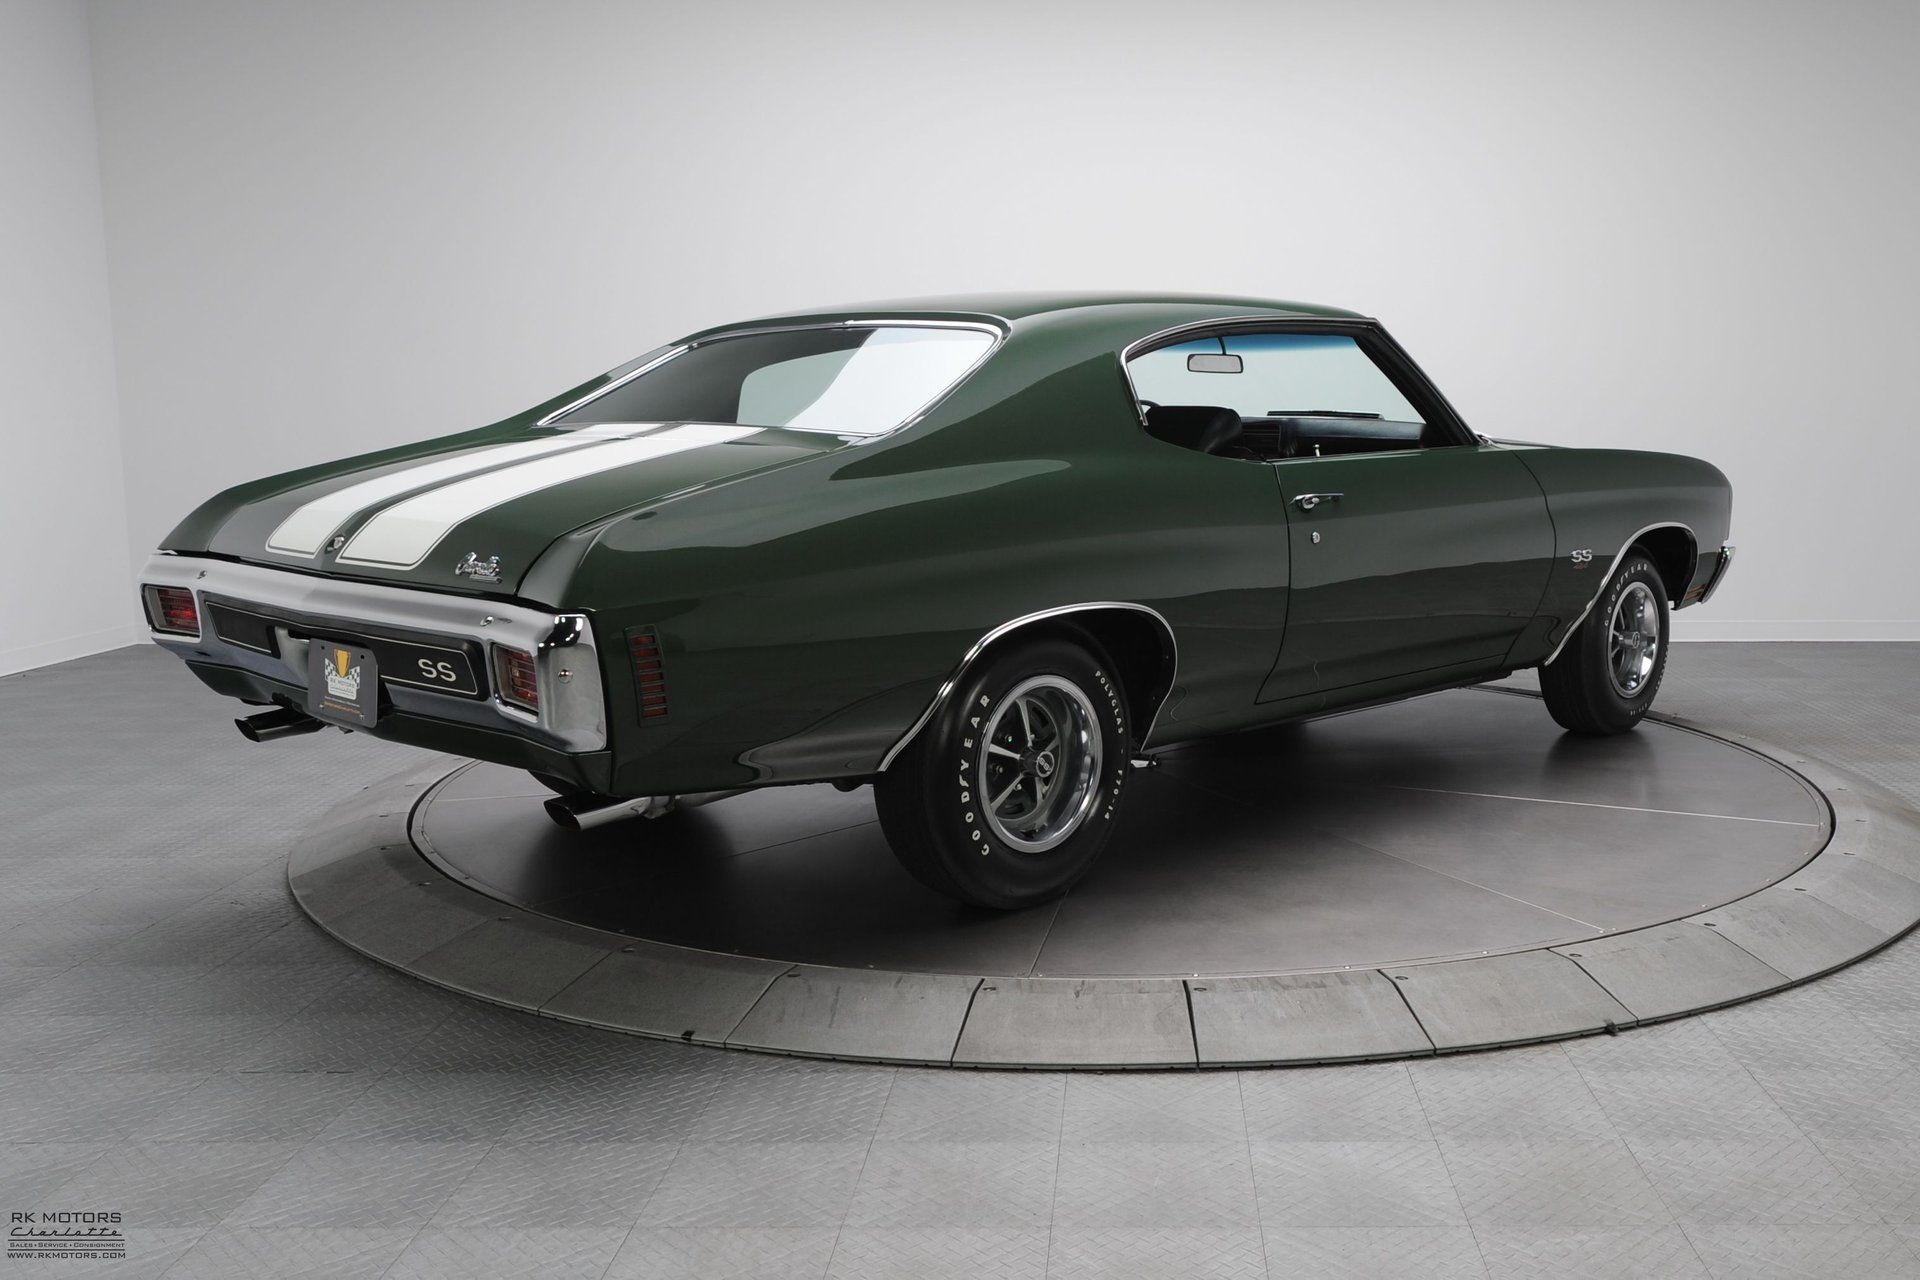 133280 1970 Chevrolet Chevelle RK Motors Classic Cars and